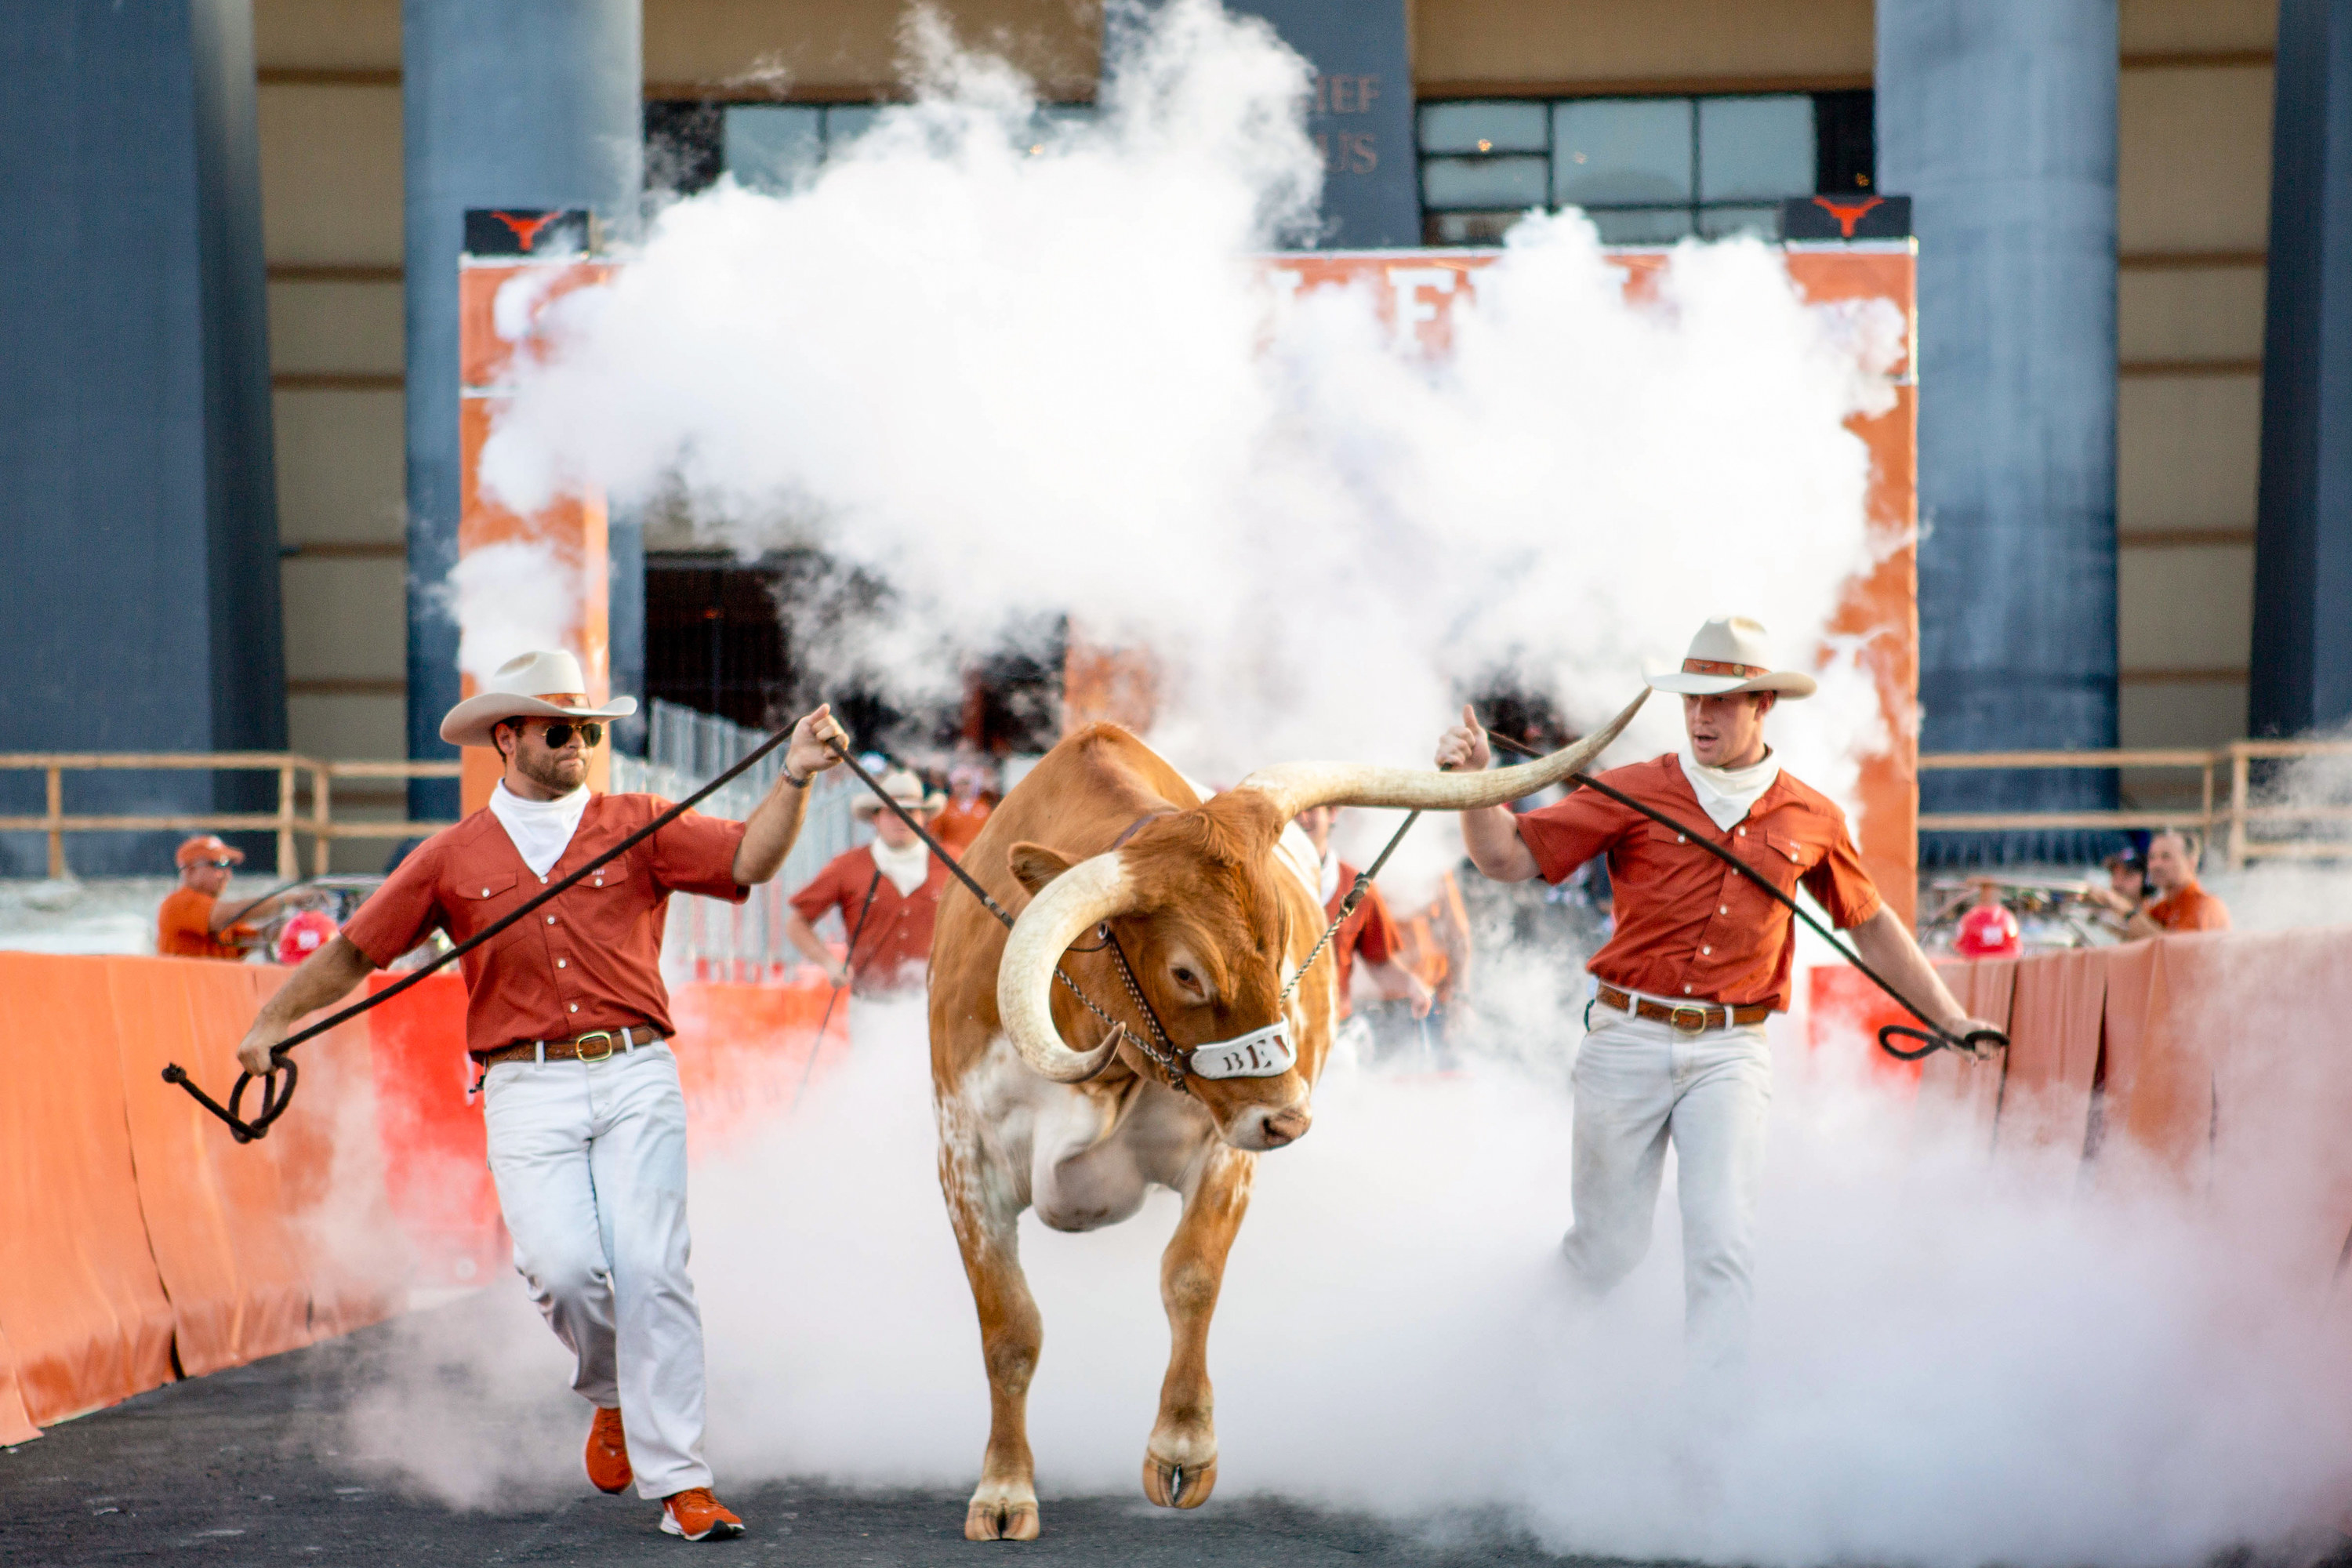 A Texas longhorn emerges from smoke on the field at a Texas football game